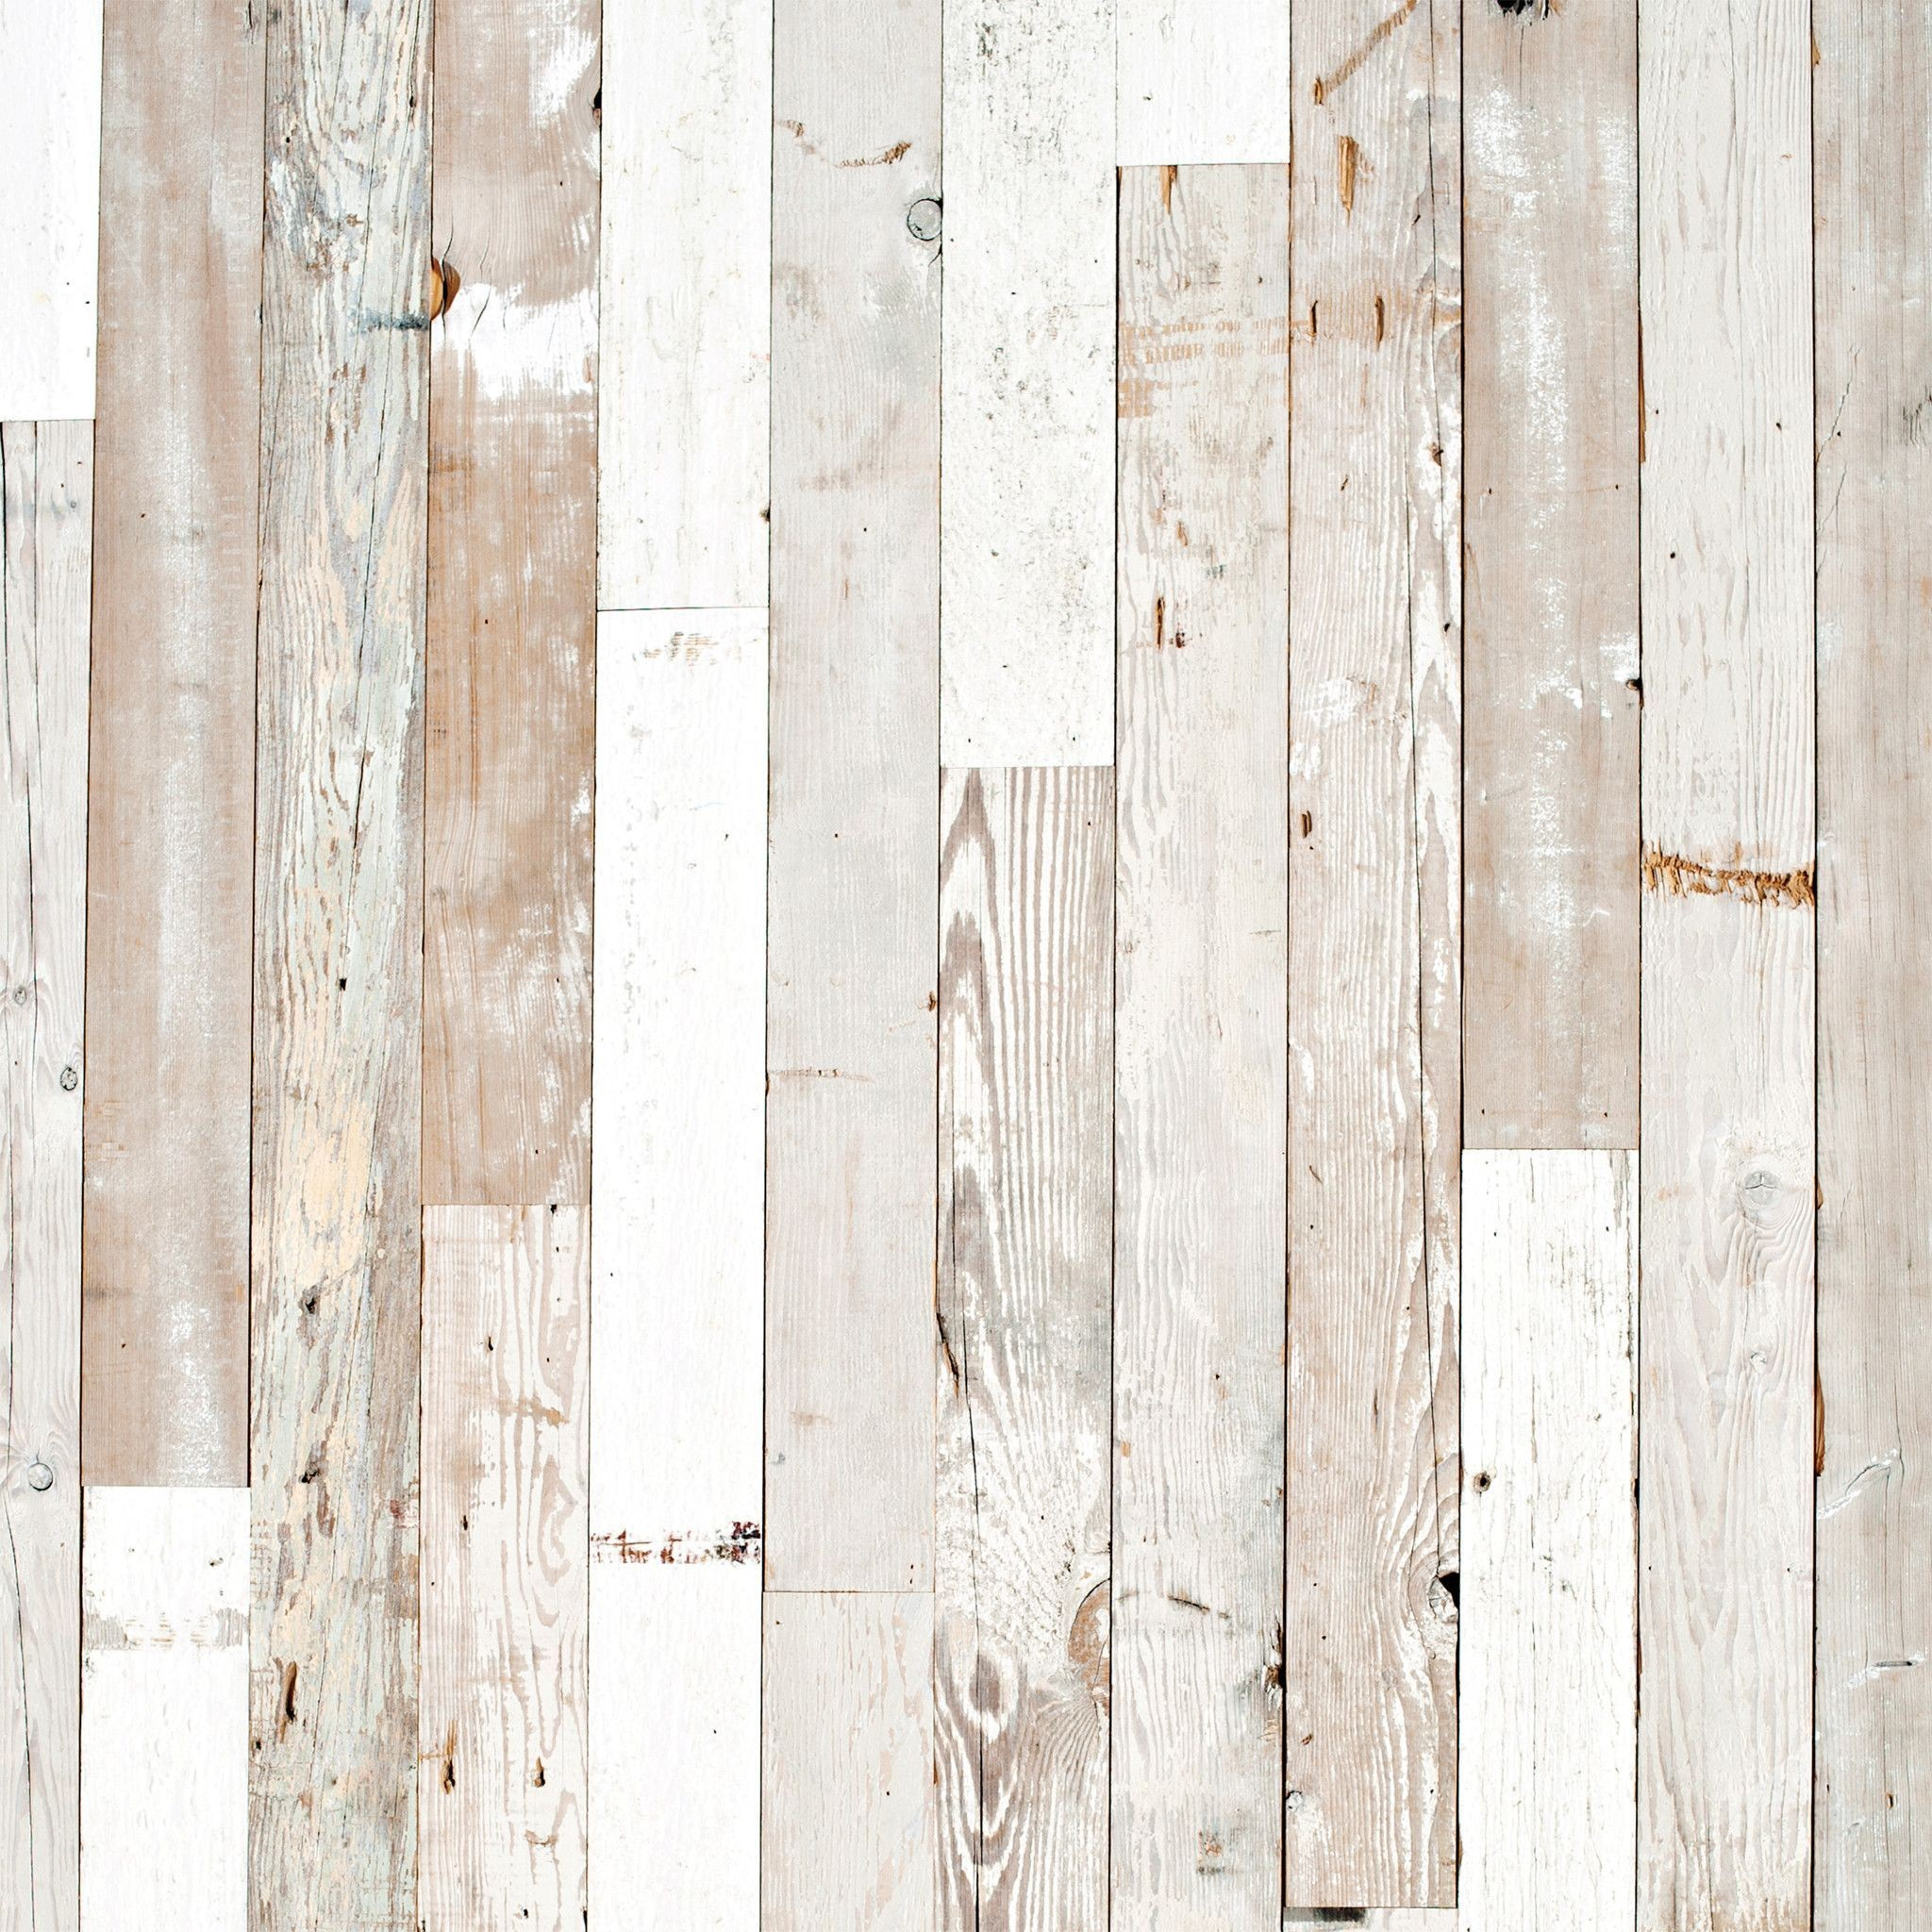 rustic barn wood background download free beautiful high resolution wallpapers for desktop. Black Bedroom Furniture Sets. Home Design Ideas